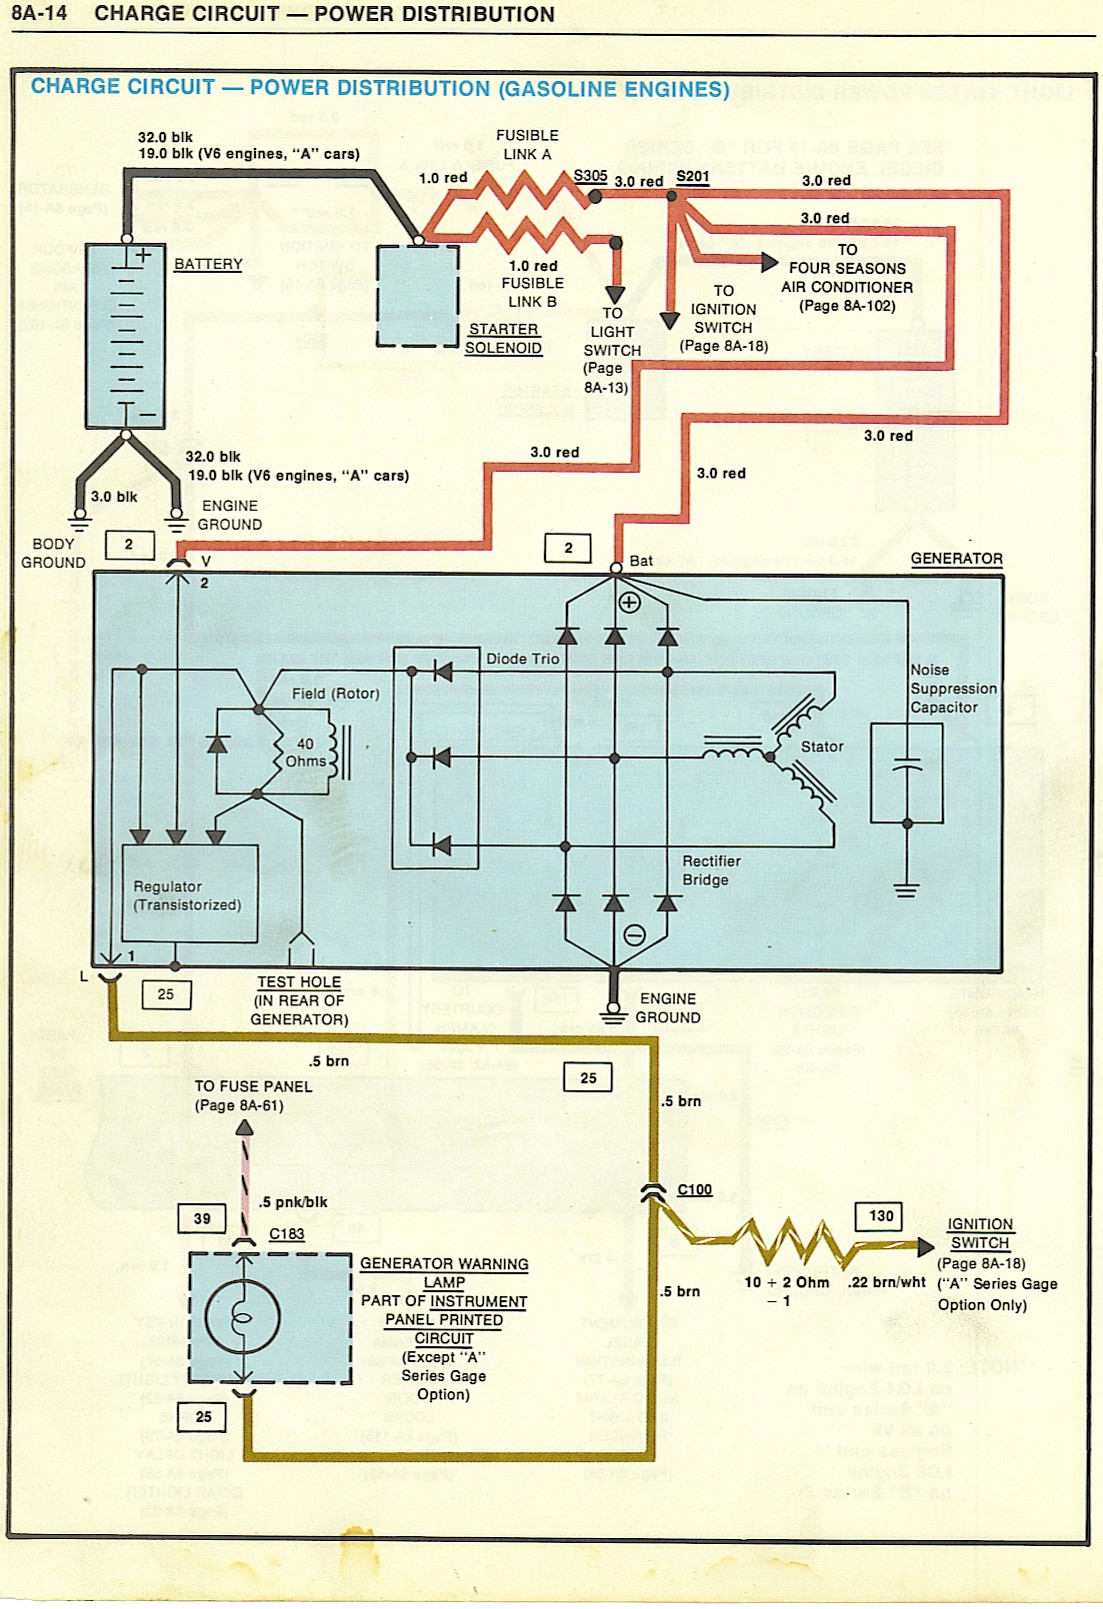 hight resolution of wiring diagrams 1978 chevy monte carlo wiring diagram 78 monte carlo wiring diagram